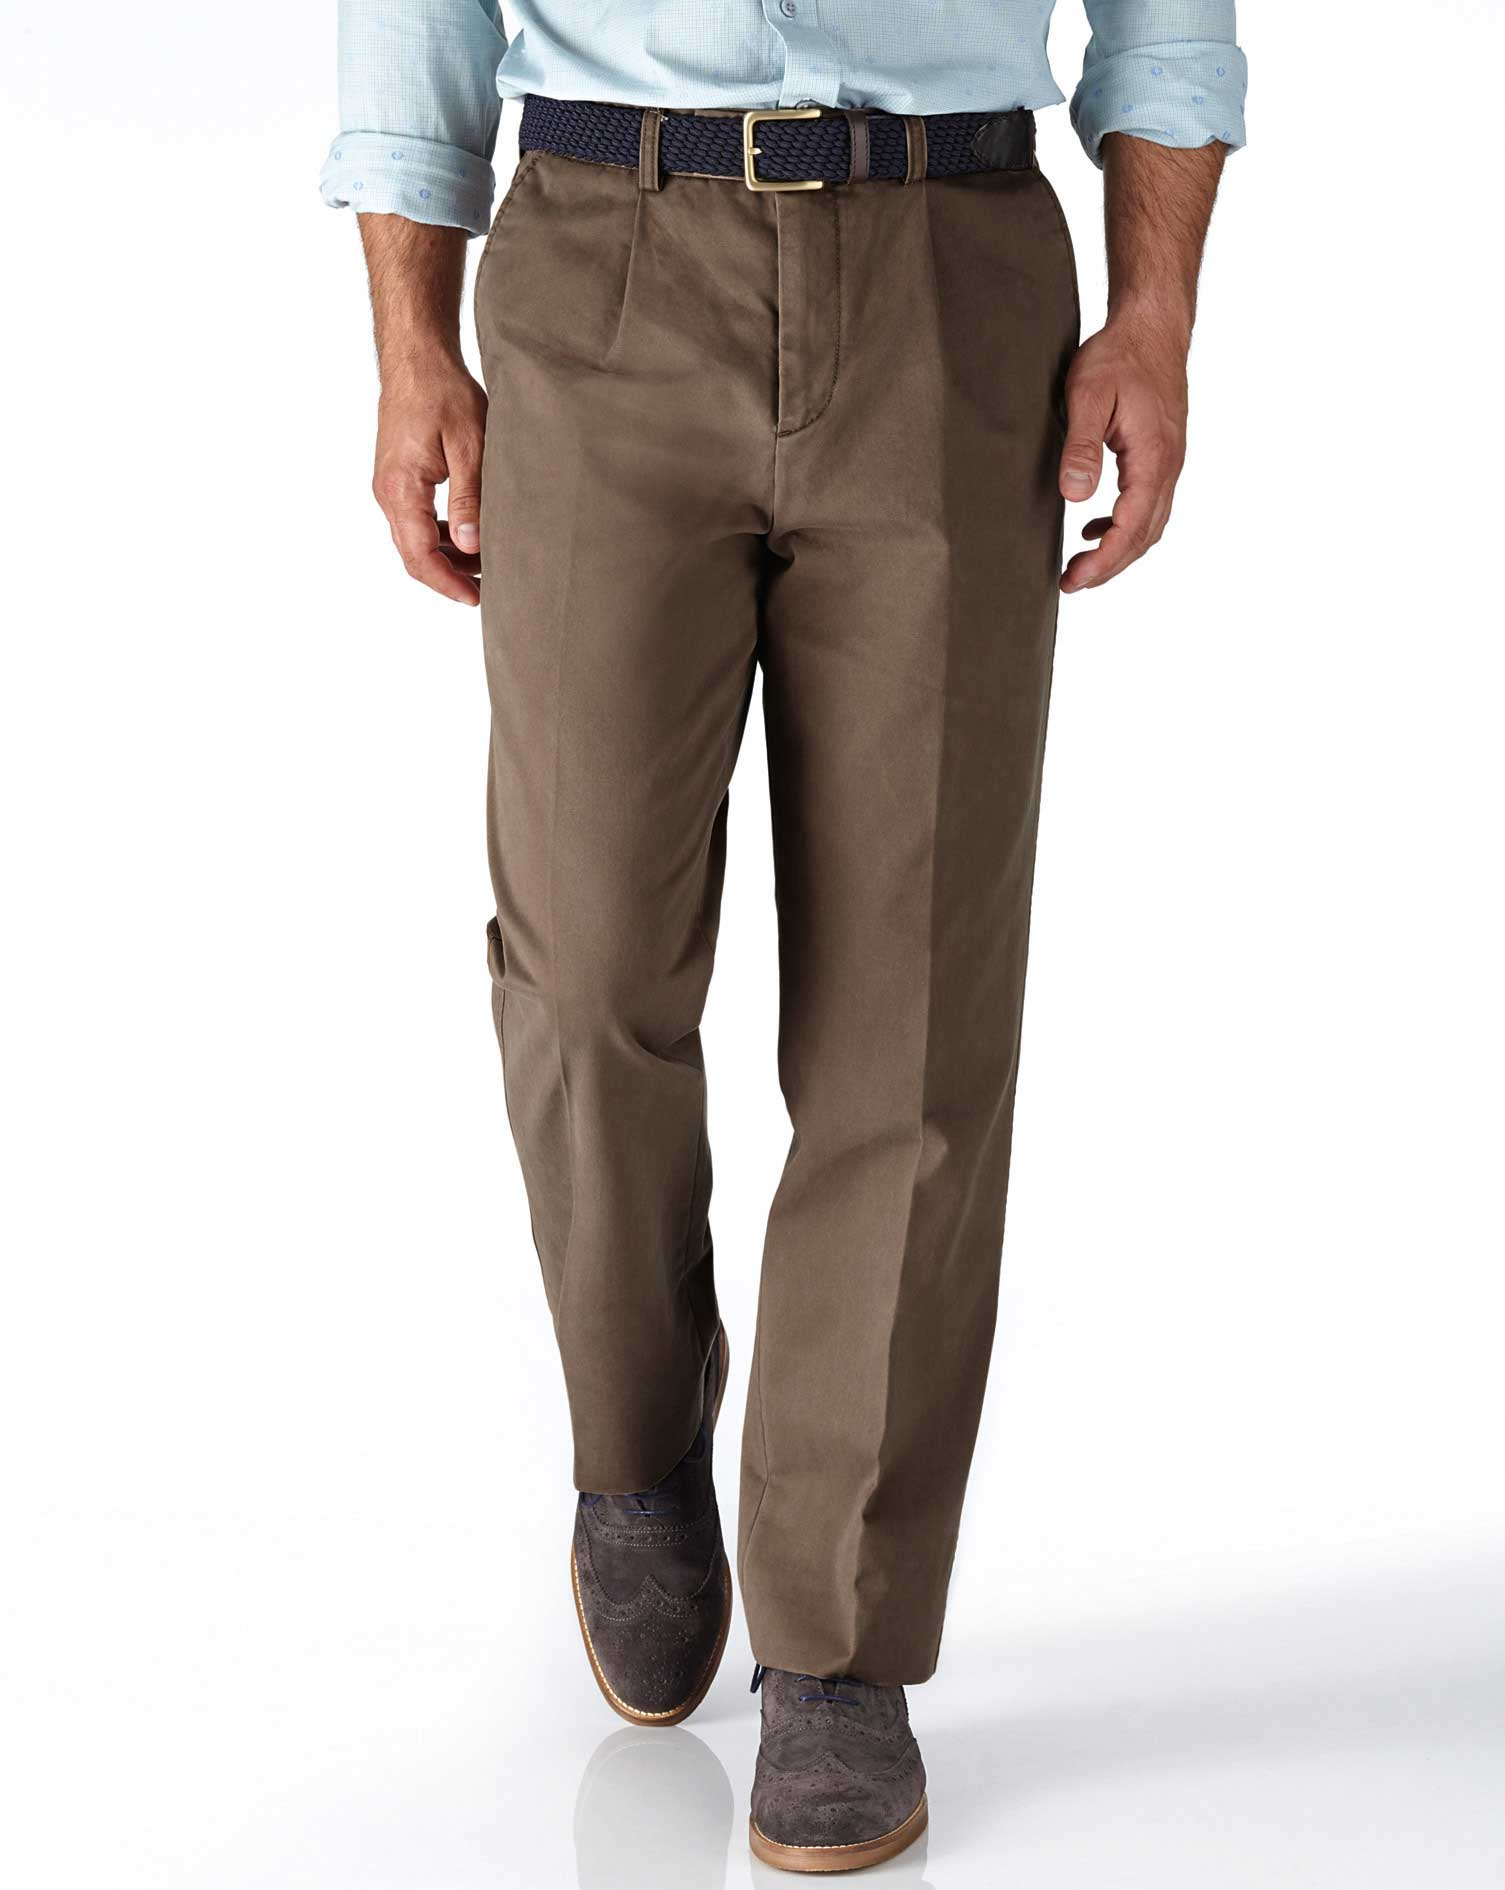 Light Brown Classic Fit Single Pleat Cotton Chino Trousers Size W32 L32 by Charles Tyrwhitt